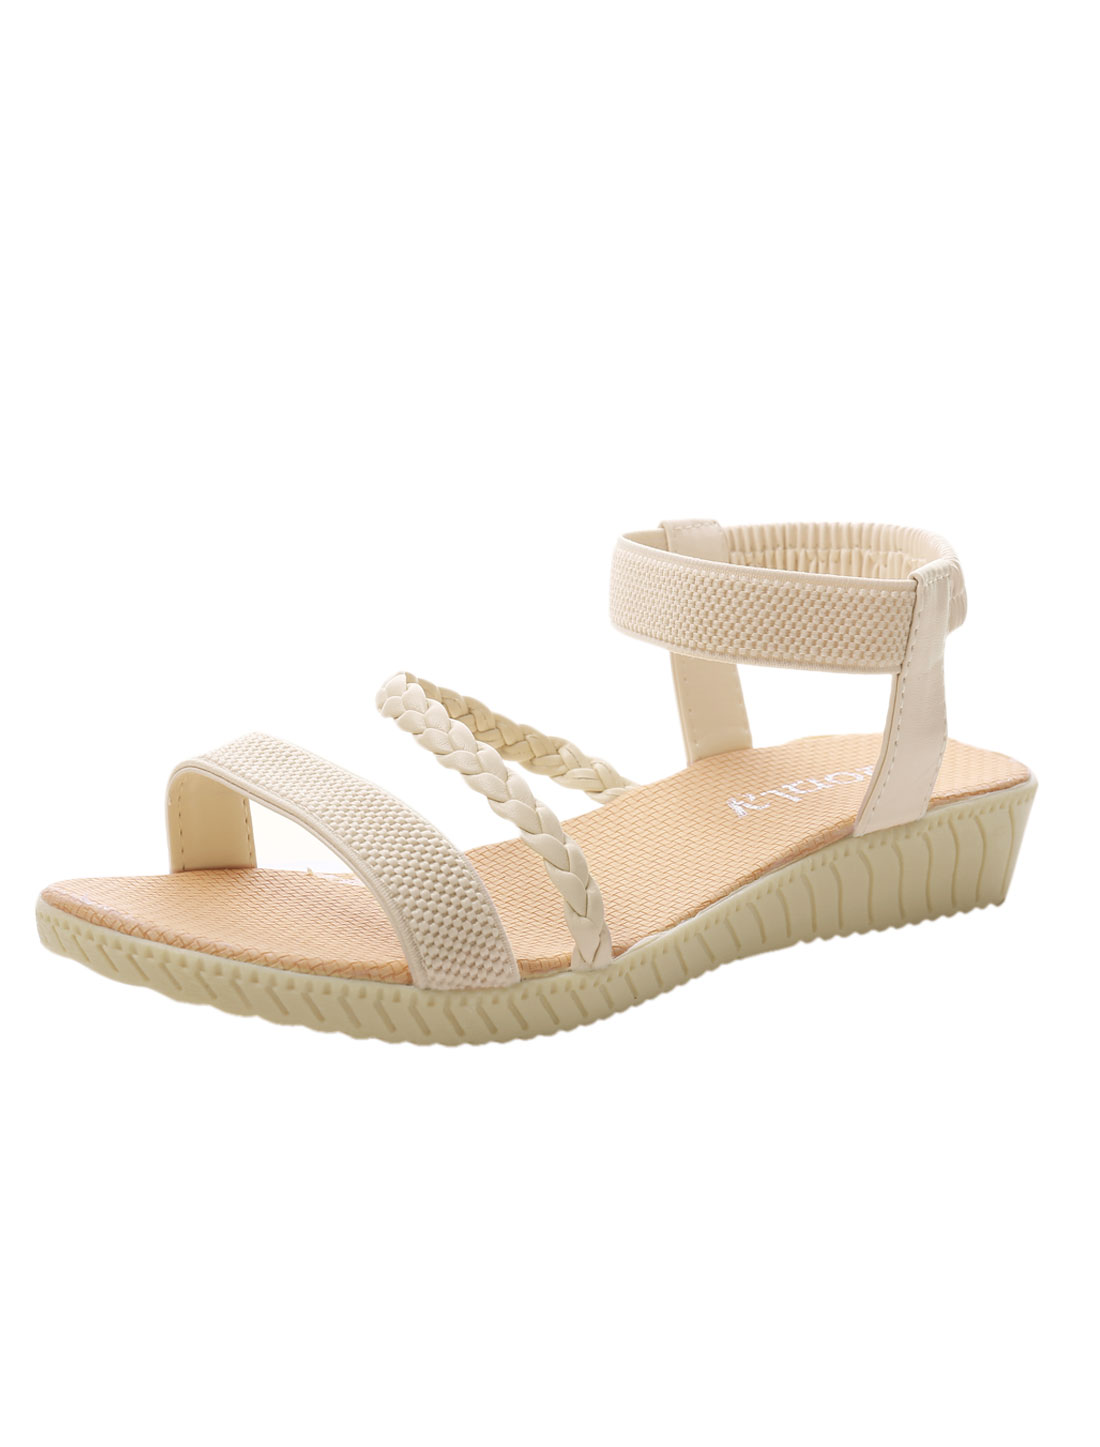 Ladies Elasticed Ankle Strap Panel Open Toe Summer Flat Sandals Beige US 5